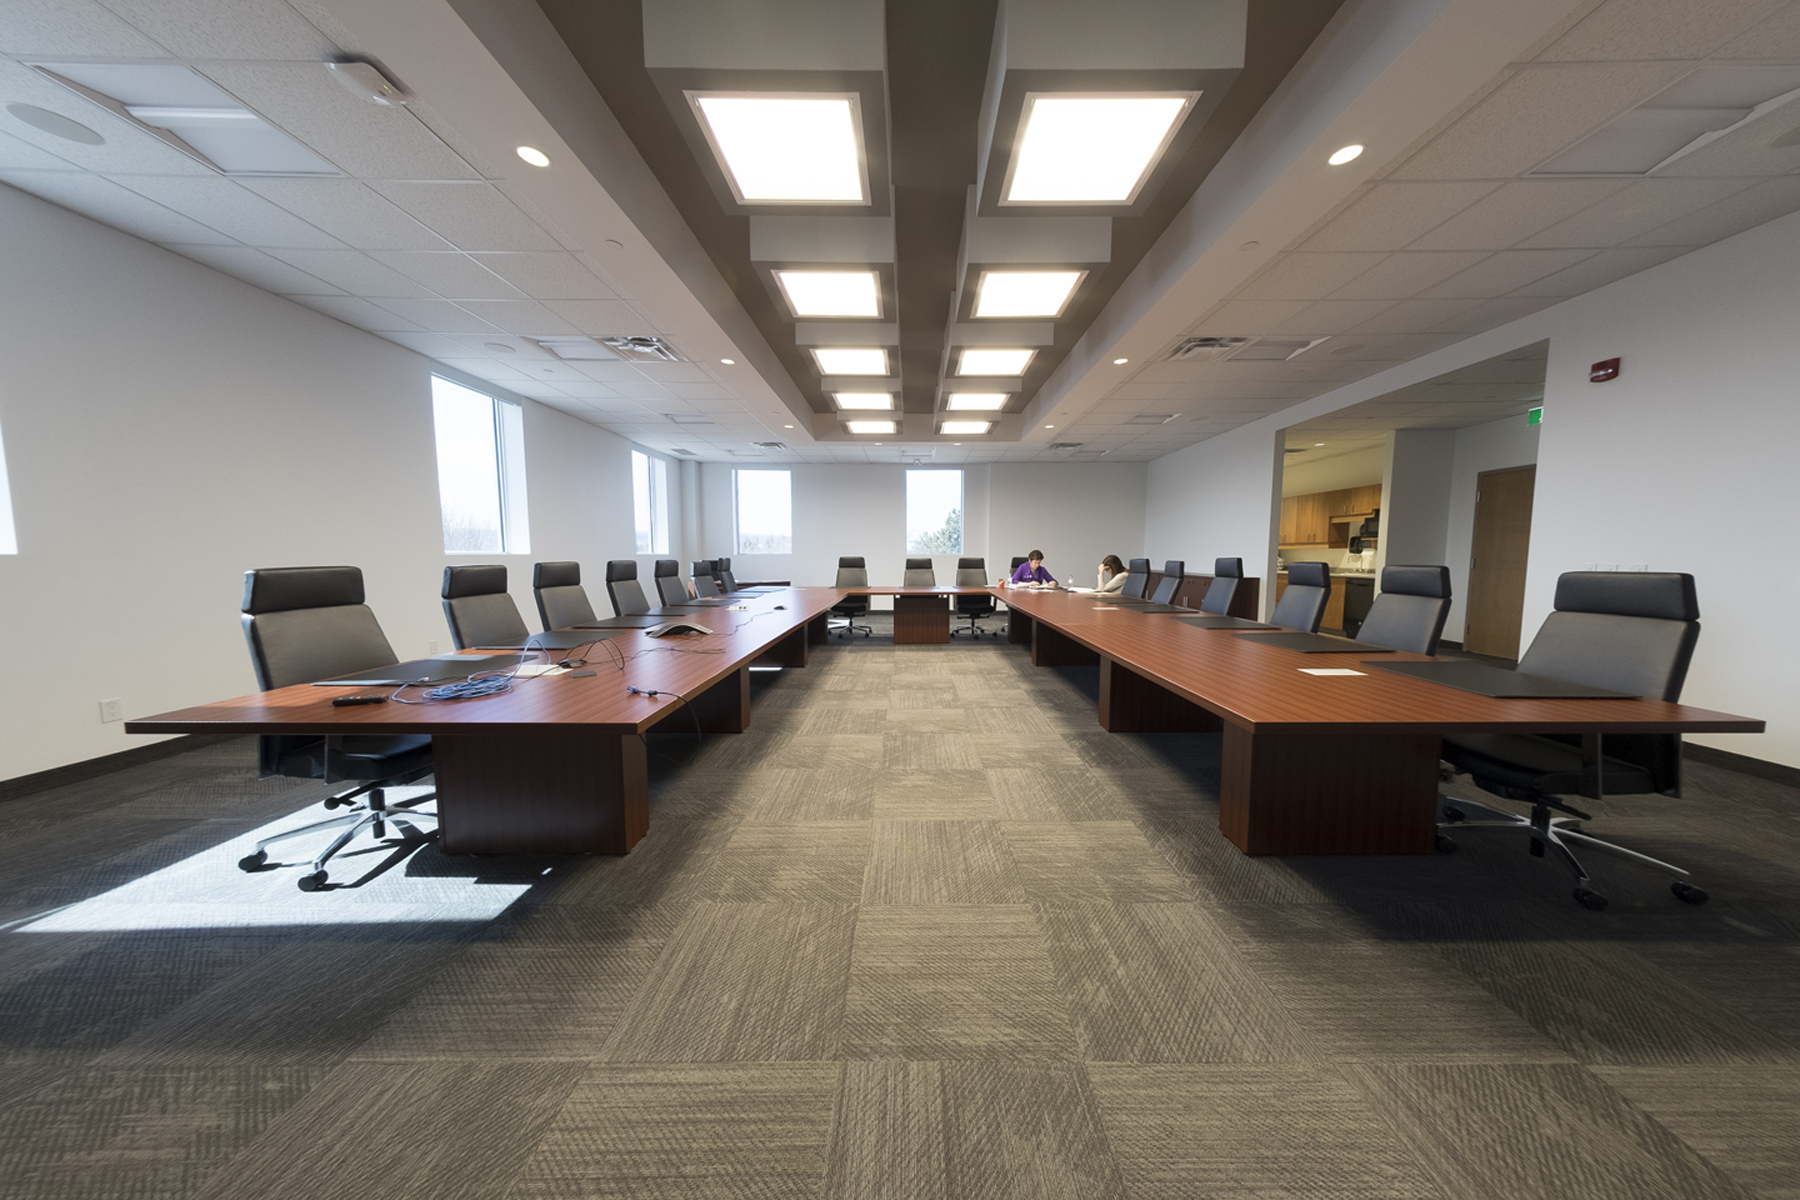 Boardroom with large U shaped wooden table and paneled light boxes on ceiling